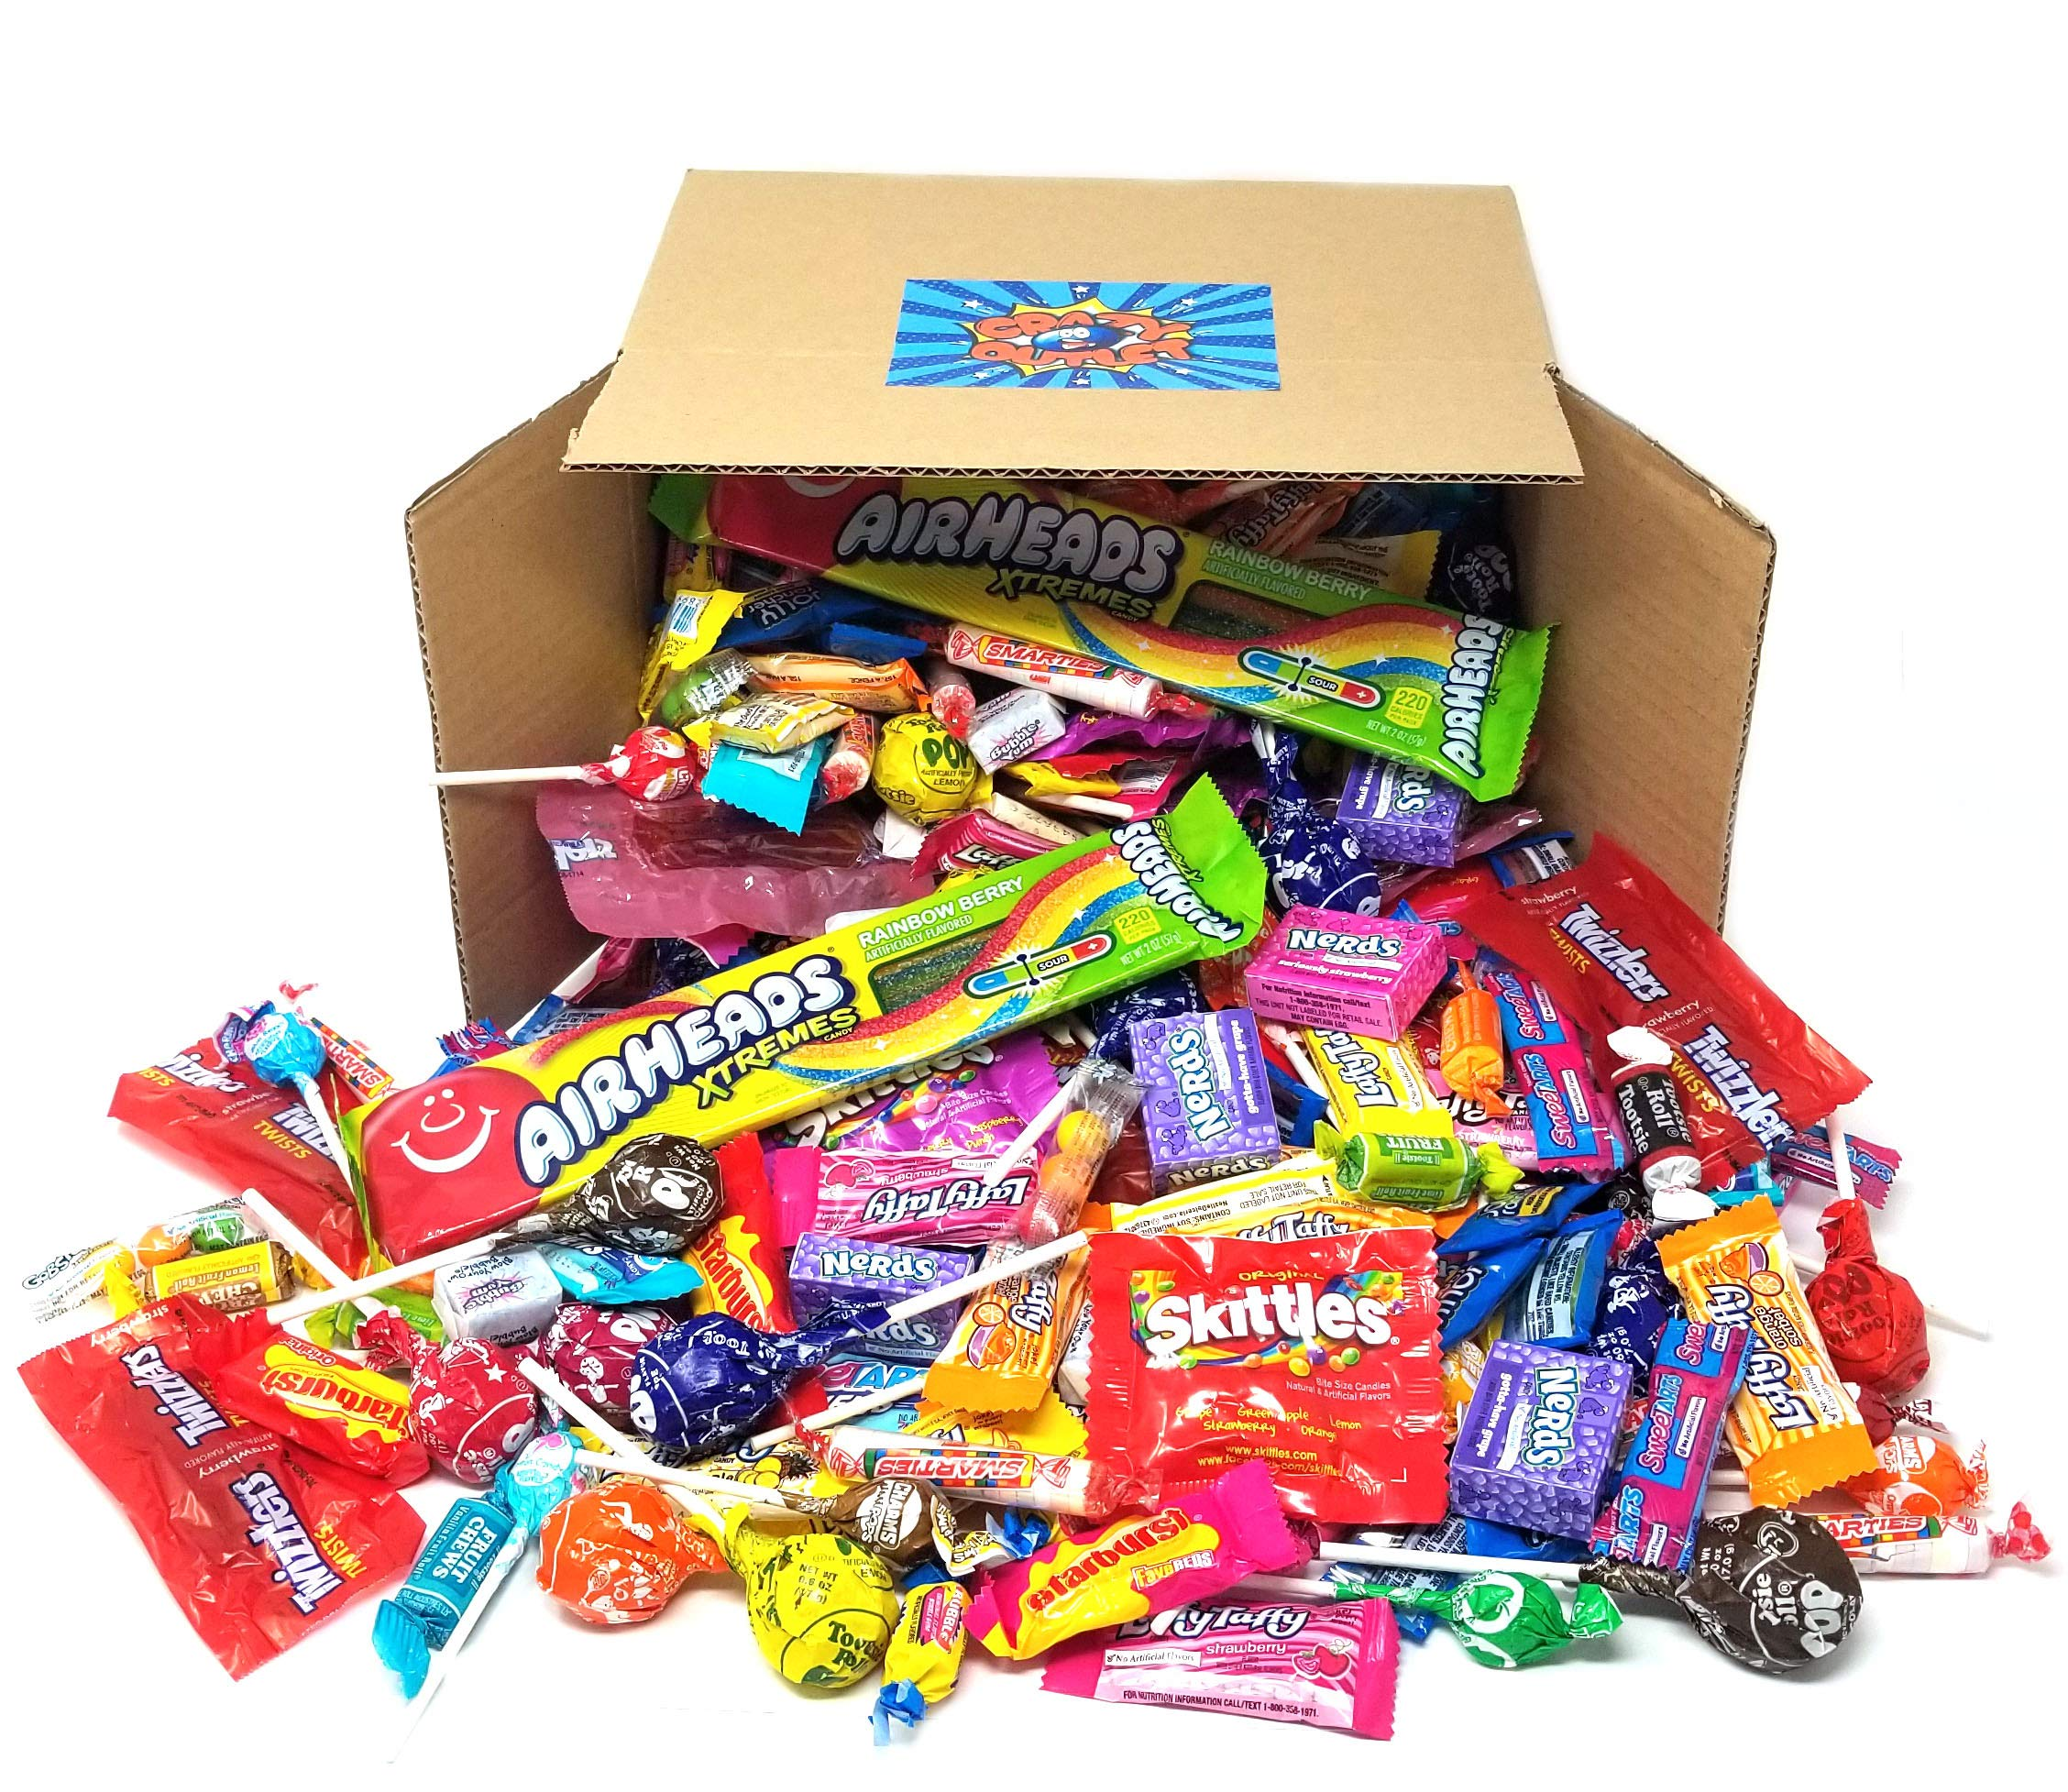 Halloween Candy - Tootsie Roll, Twizzlers, Starburst, Jolly Ranchers, Skittles, Nerds, Smarties, Sweetarts, Charms, Airheads, Dubble Bubble, Bubble Yum, Gobstopper, Laffy Taffy, Bulk Pack, 5 Lbs by CRAZYOUTLET